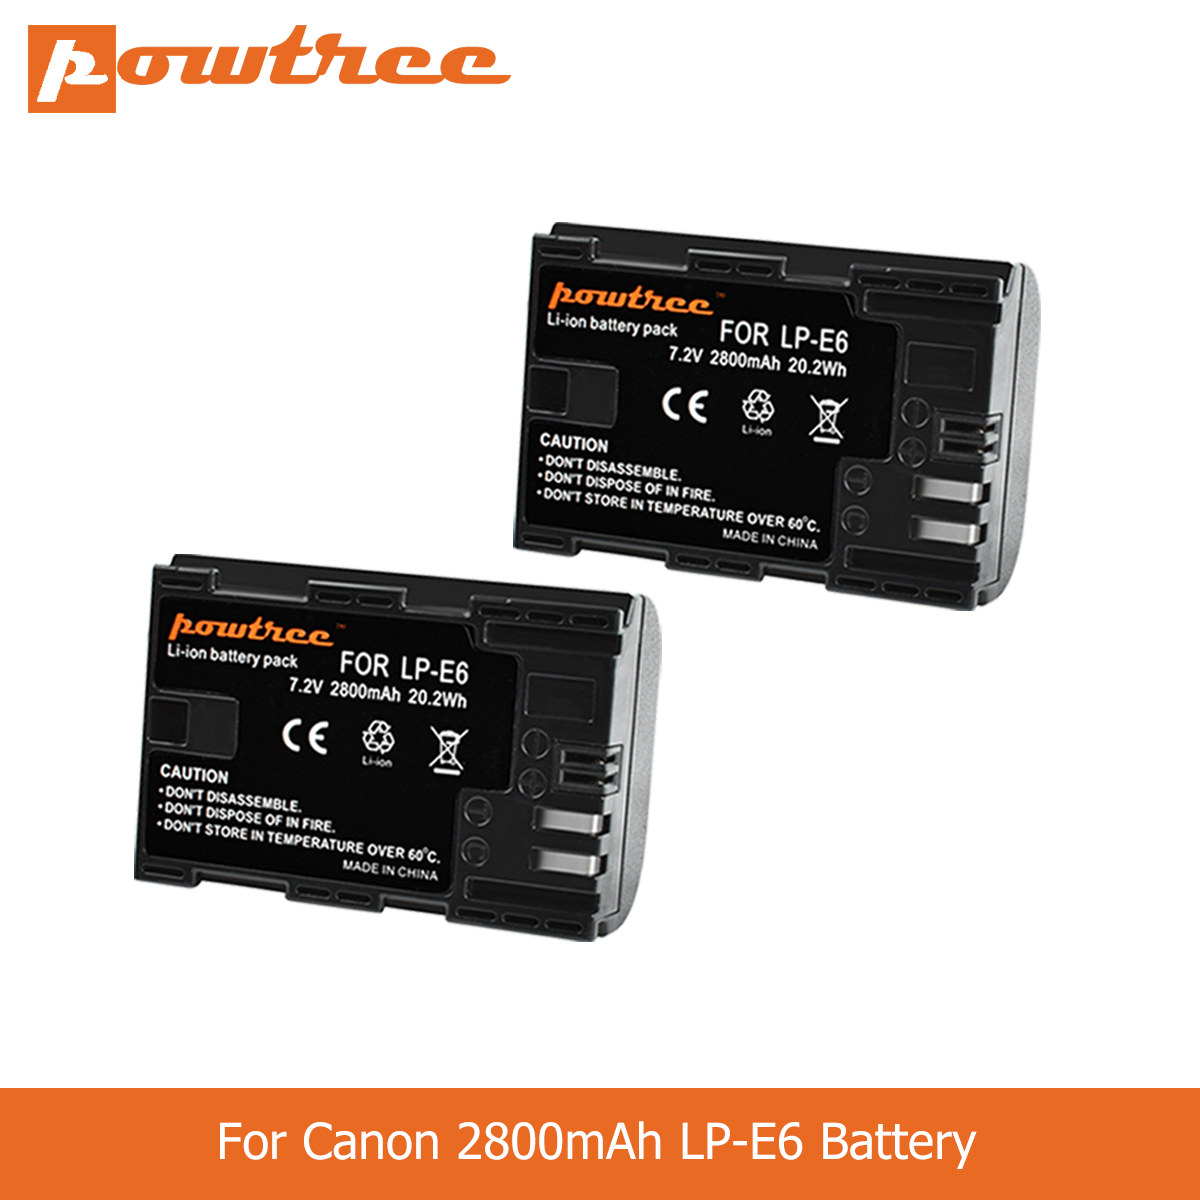 POWTREE 2800mAh LP-E6 LP E6 LPE6 Camera Battery For Canon 5D Mark II III 7D 60D EOS 6D 70D 80D For Canon Accessories L50